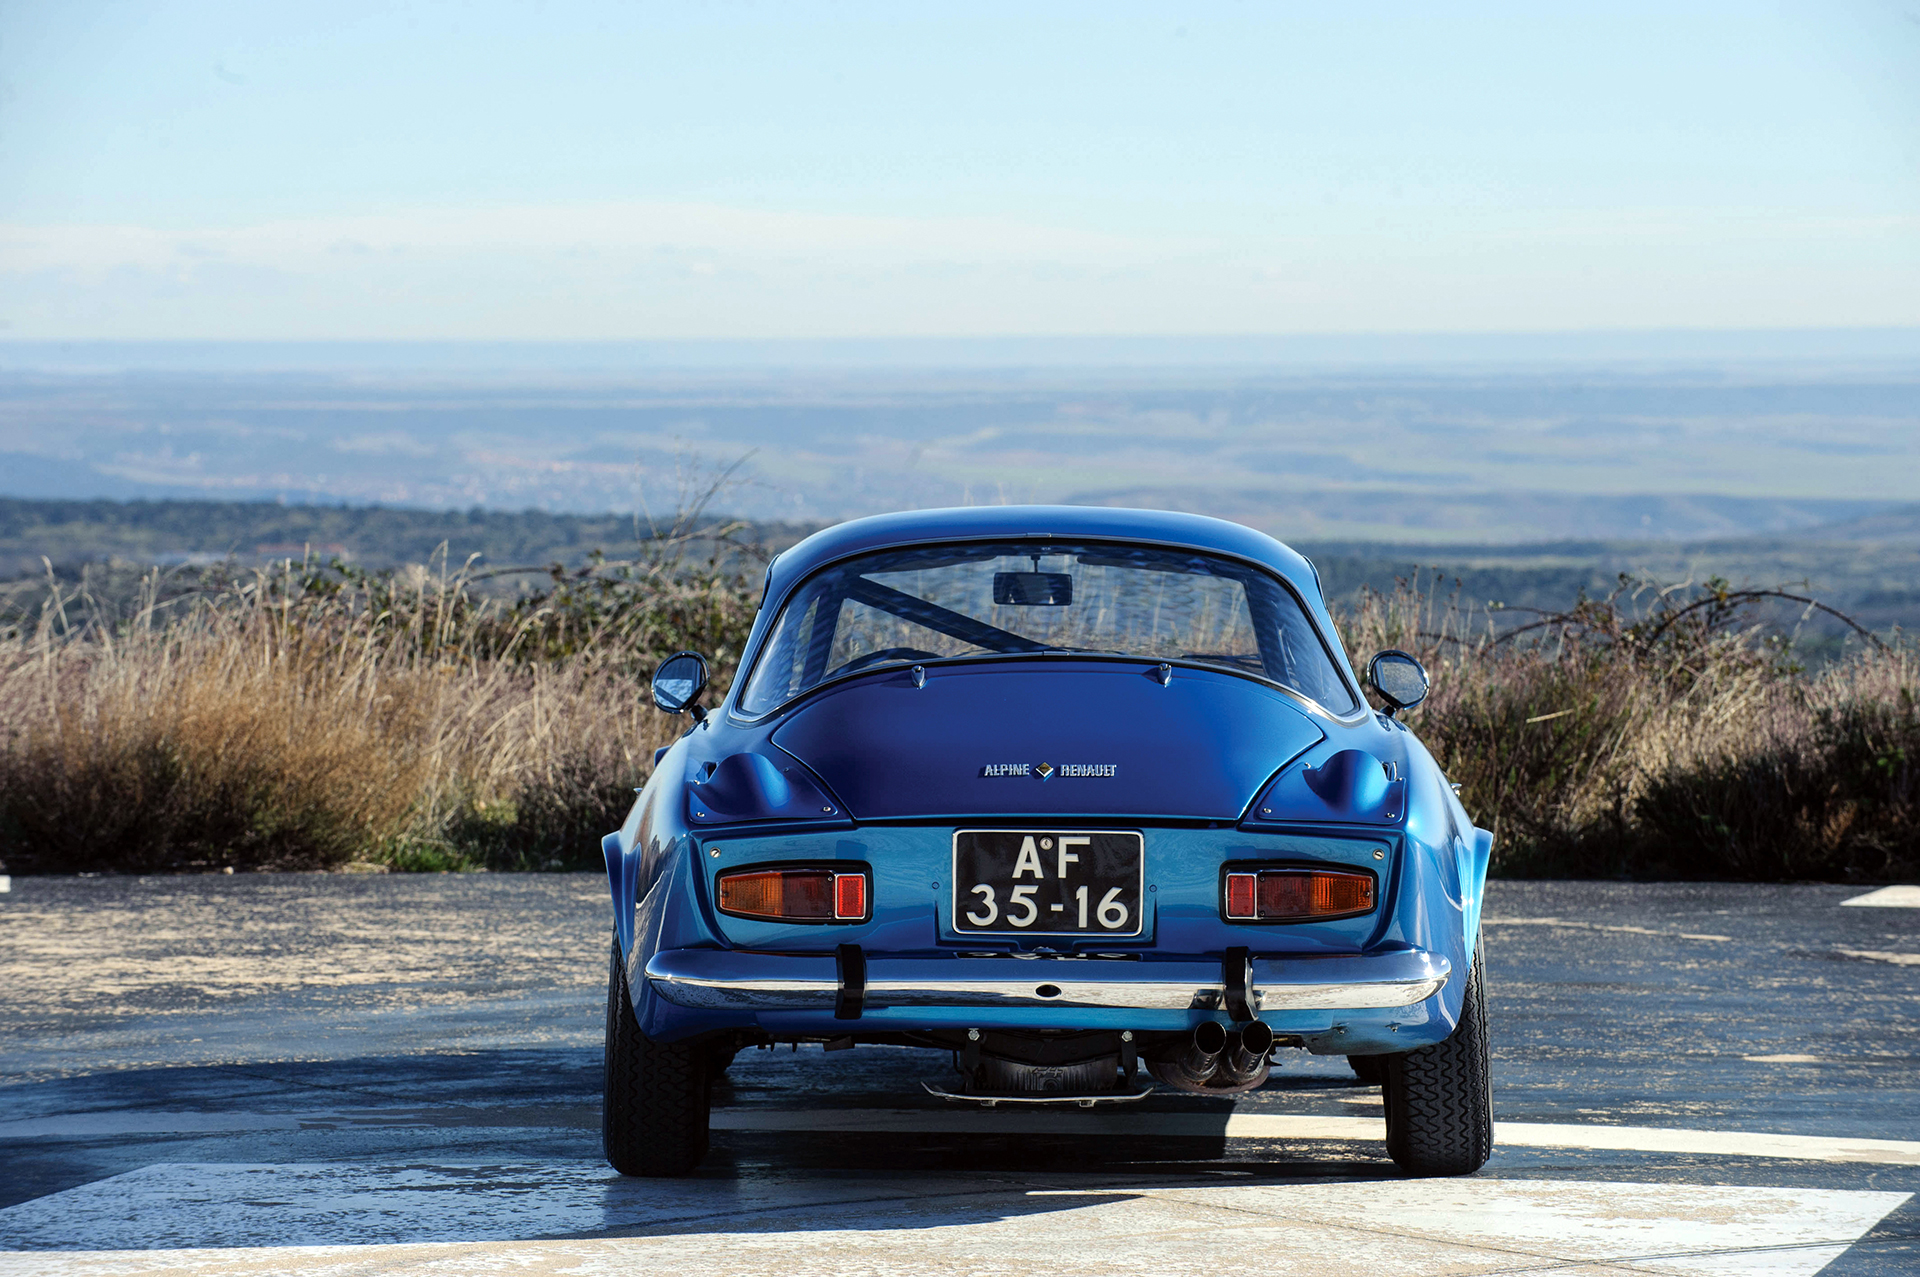 Alpine A110 1600S - arrière / rear - Photo Tom Wood 2015 Courtesy of RM Auctions